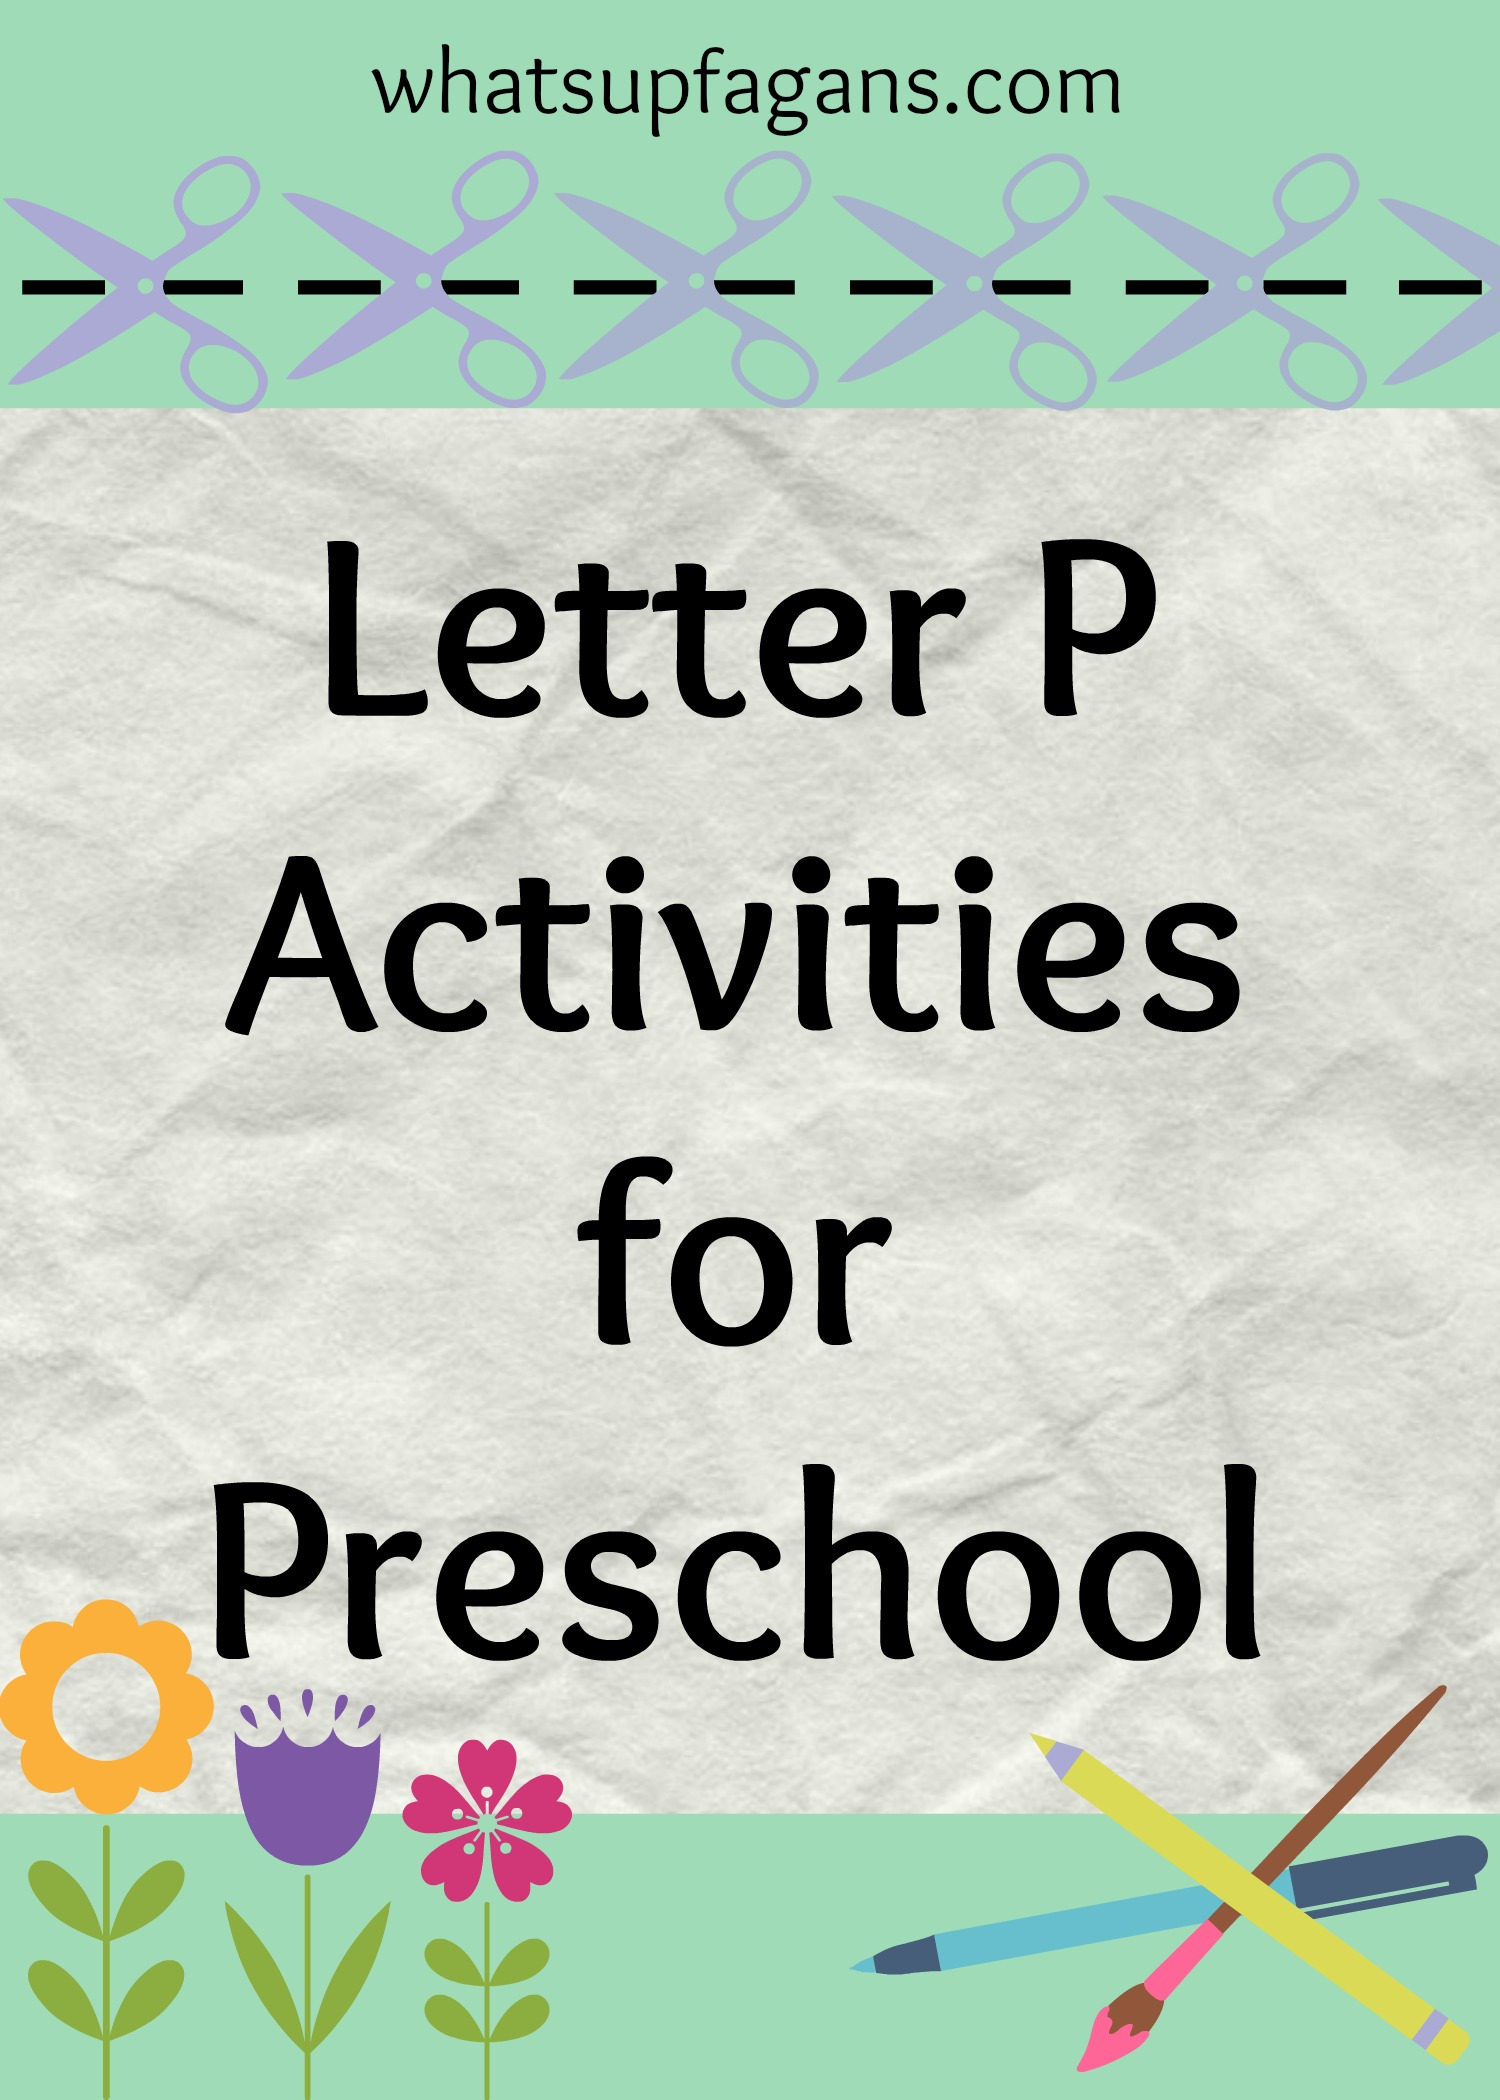 Letter P Activities For Preschool